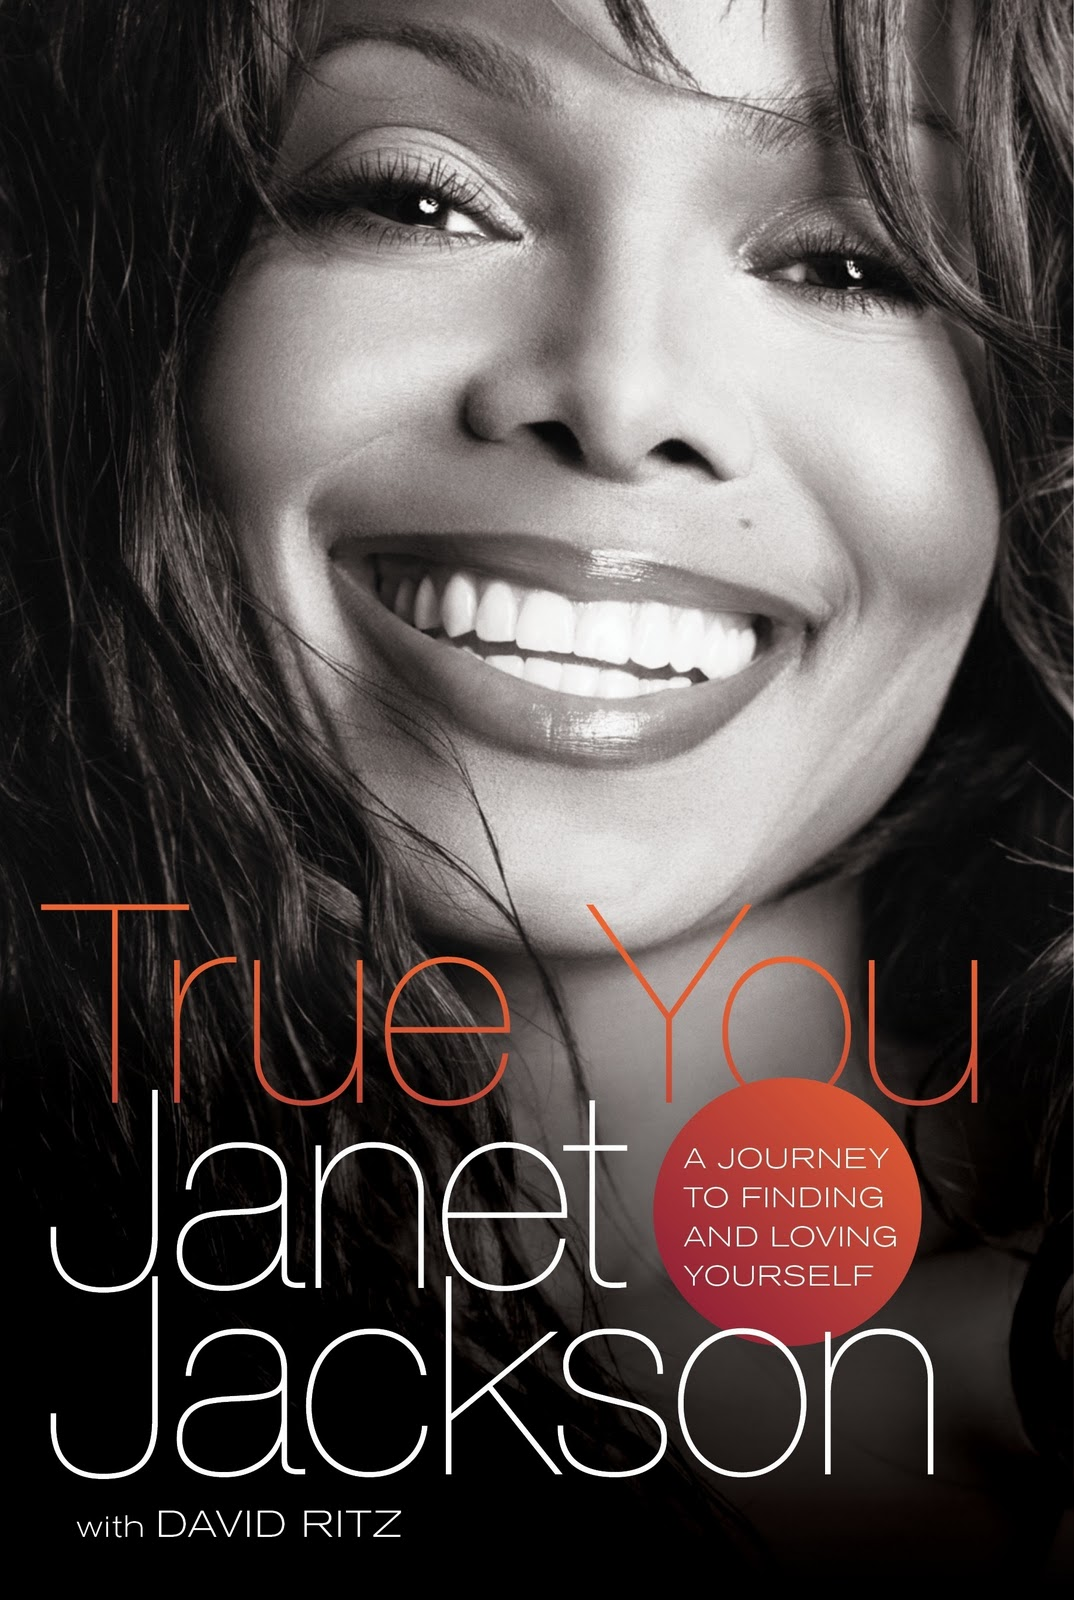 Janet Jackson: Up Close and